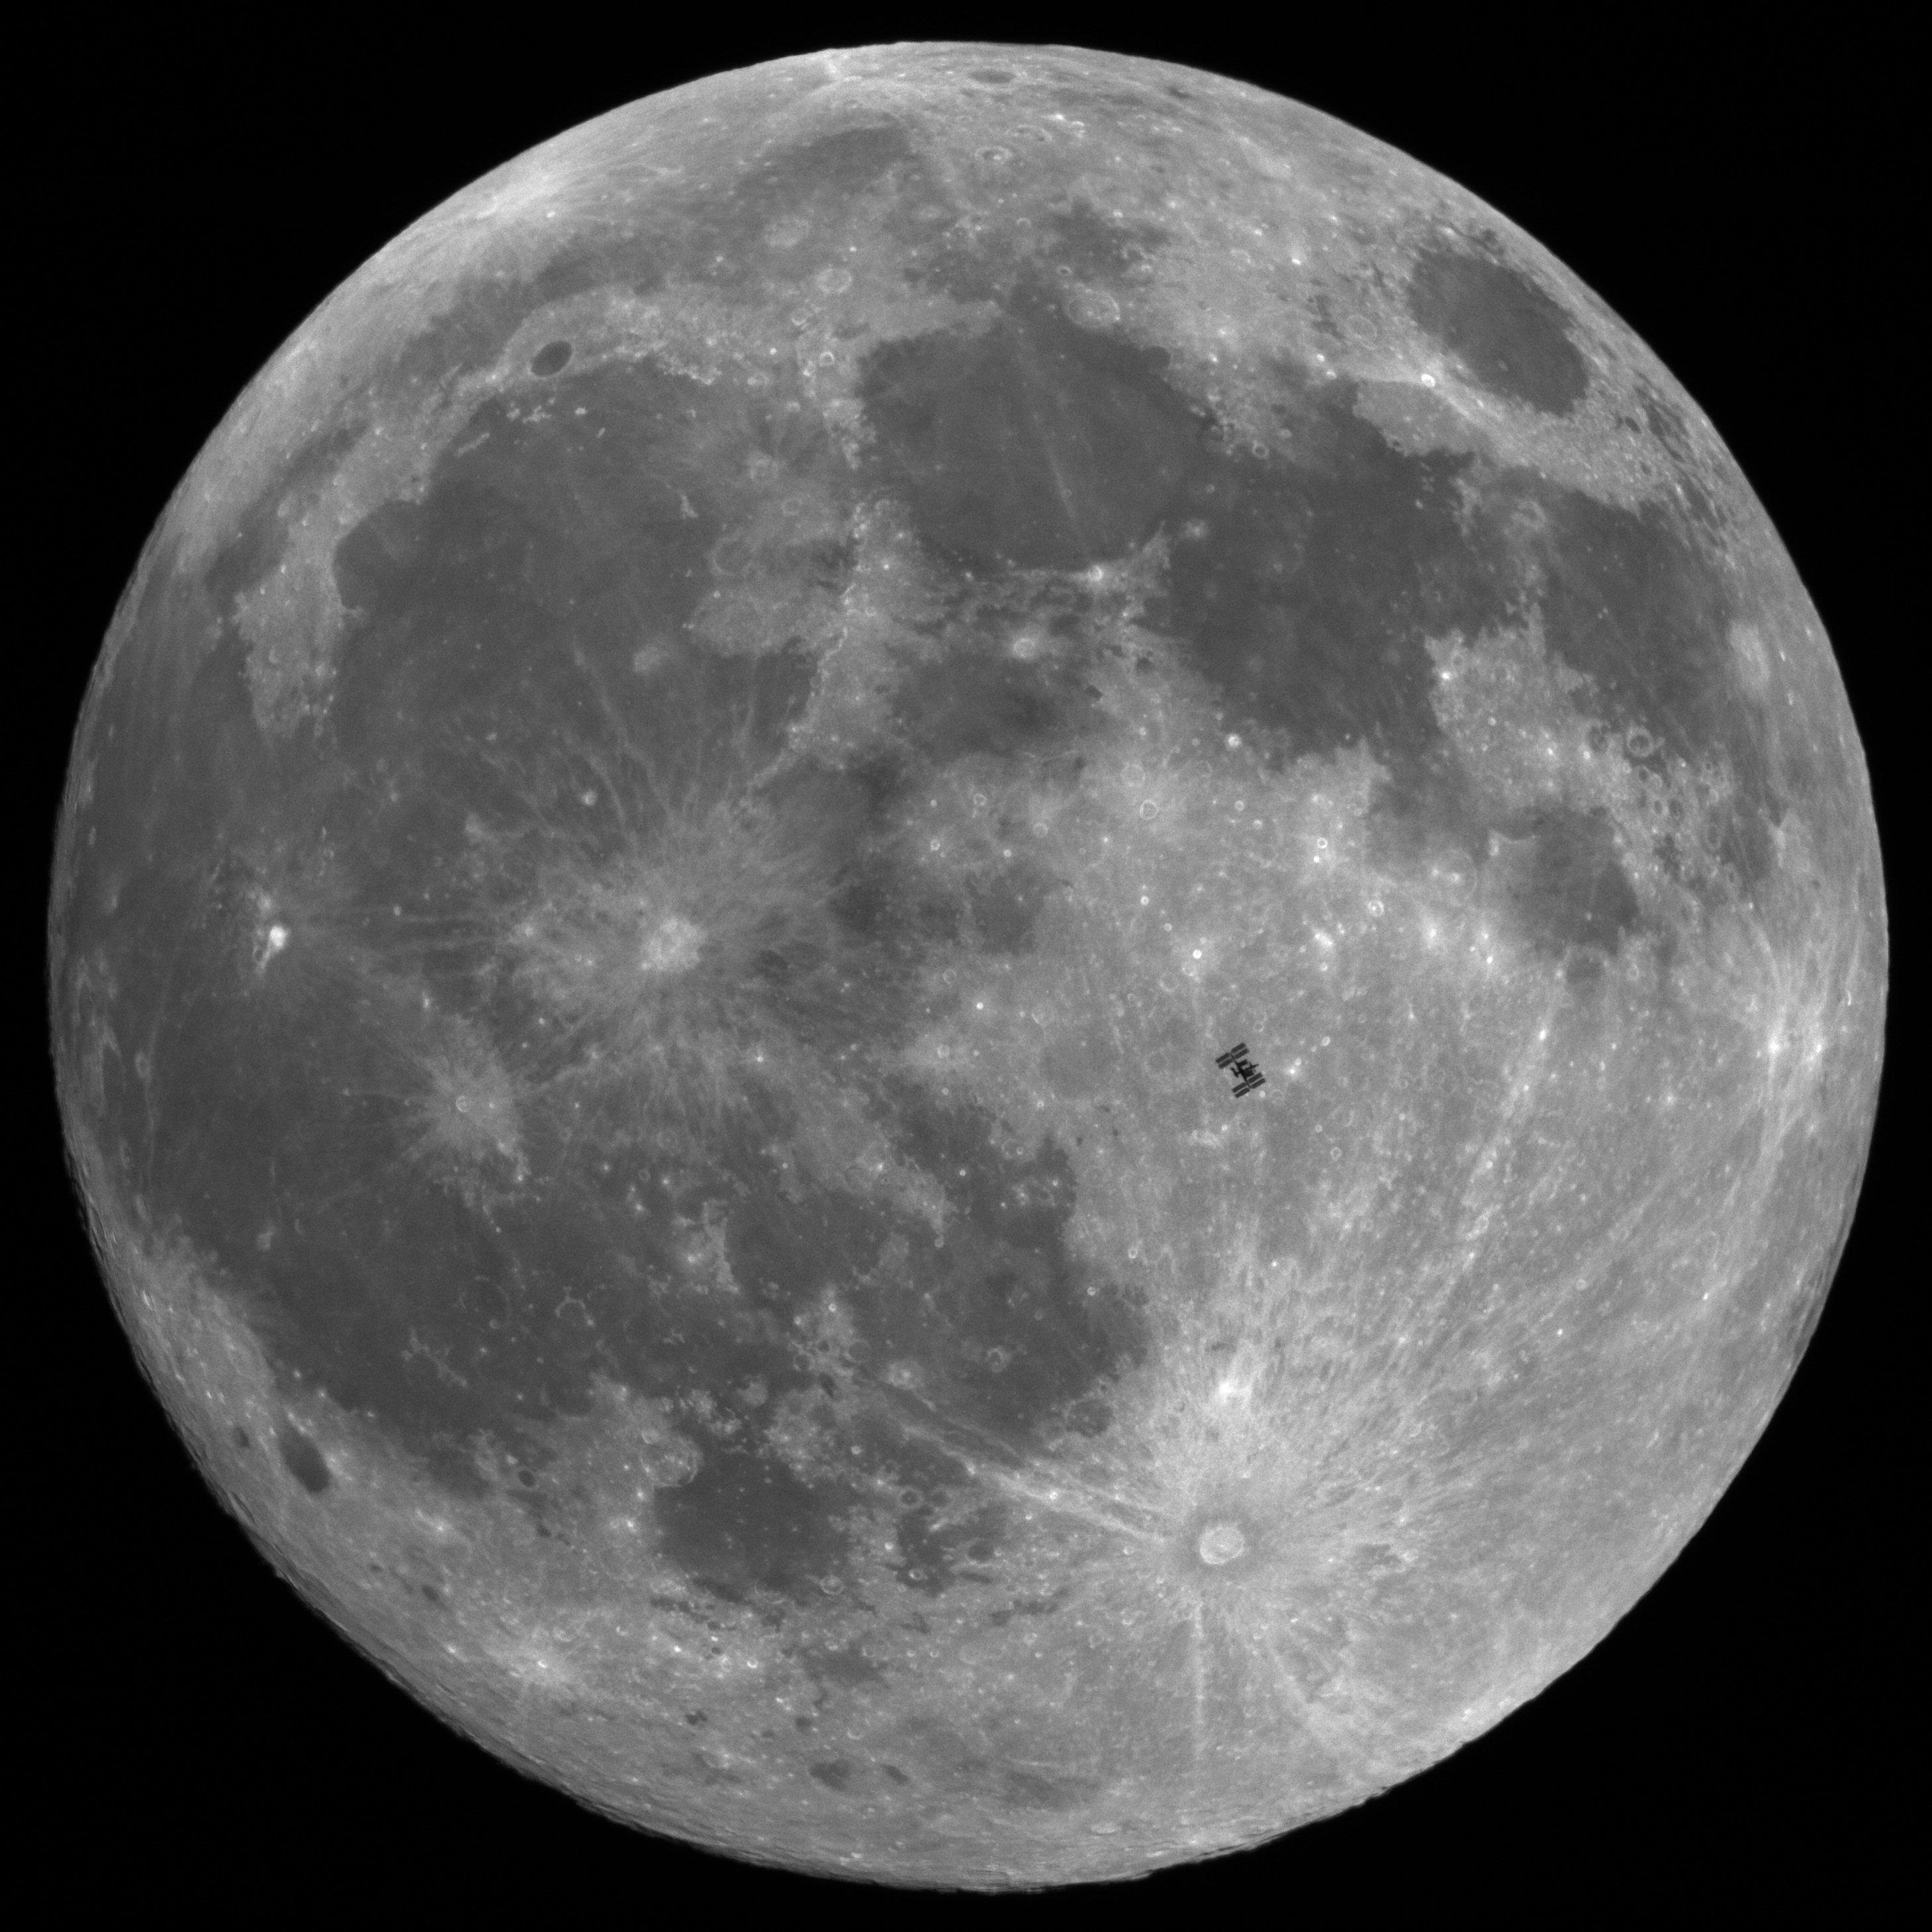 The International Space Station in front of the full moon